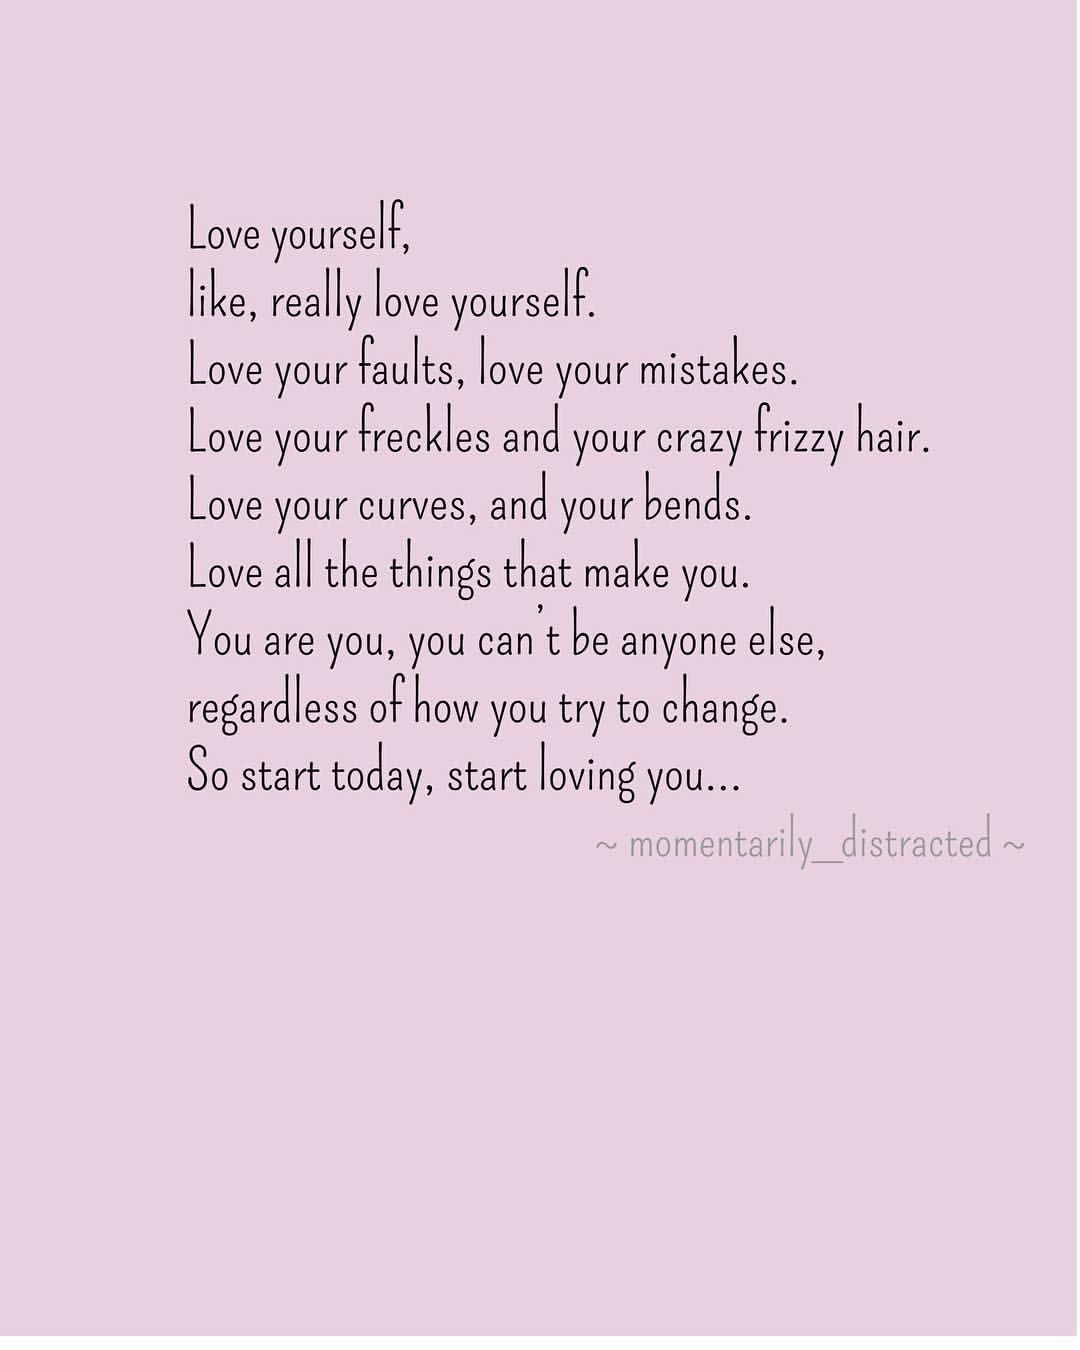 Instagram Captions about Self Love 2021💖 - Self Love Quotes